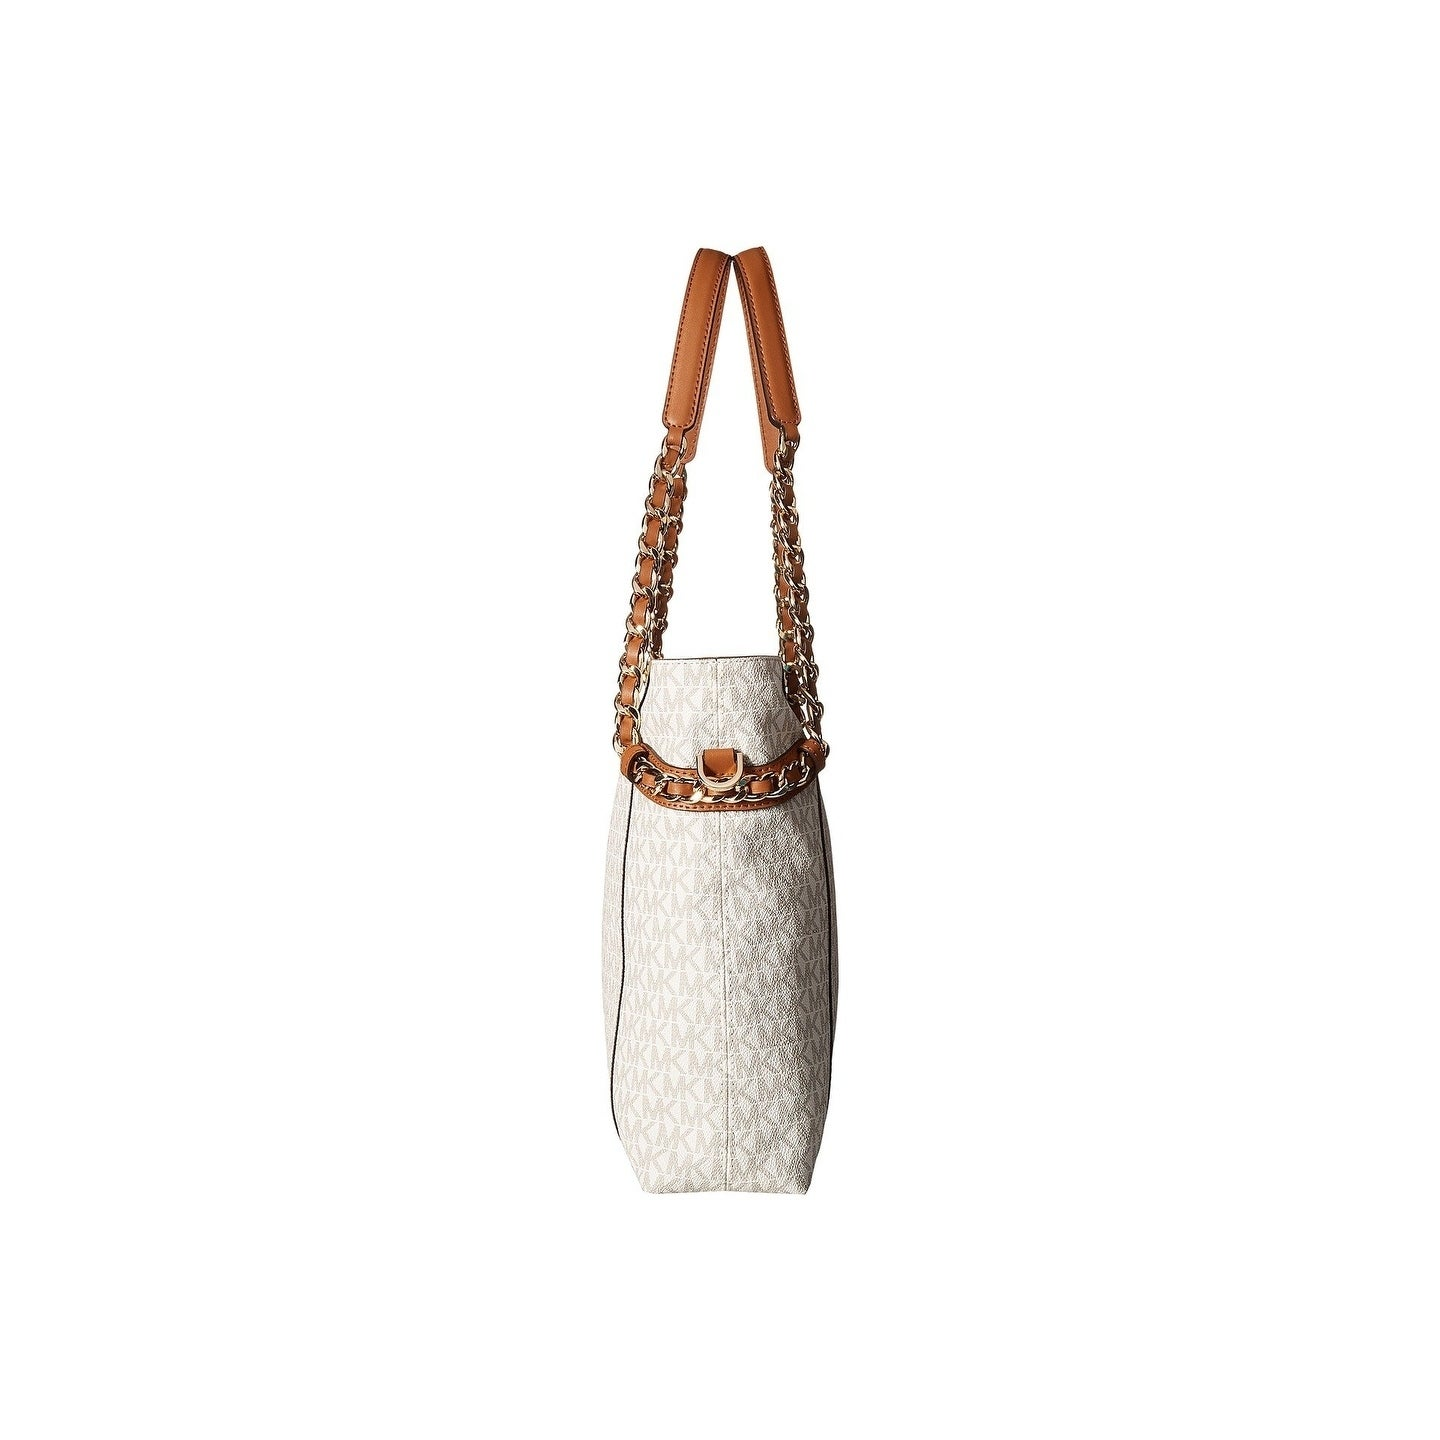 95d1f8daef75 Shop MICHAEL Michael Kors Remy Vanilla Medium Shoulder Tote - Free Shipping  Today - Overstock - 22365268